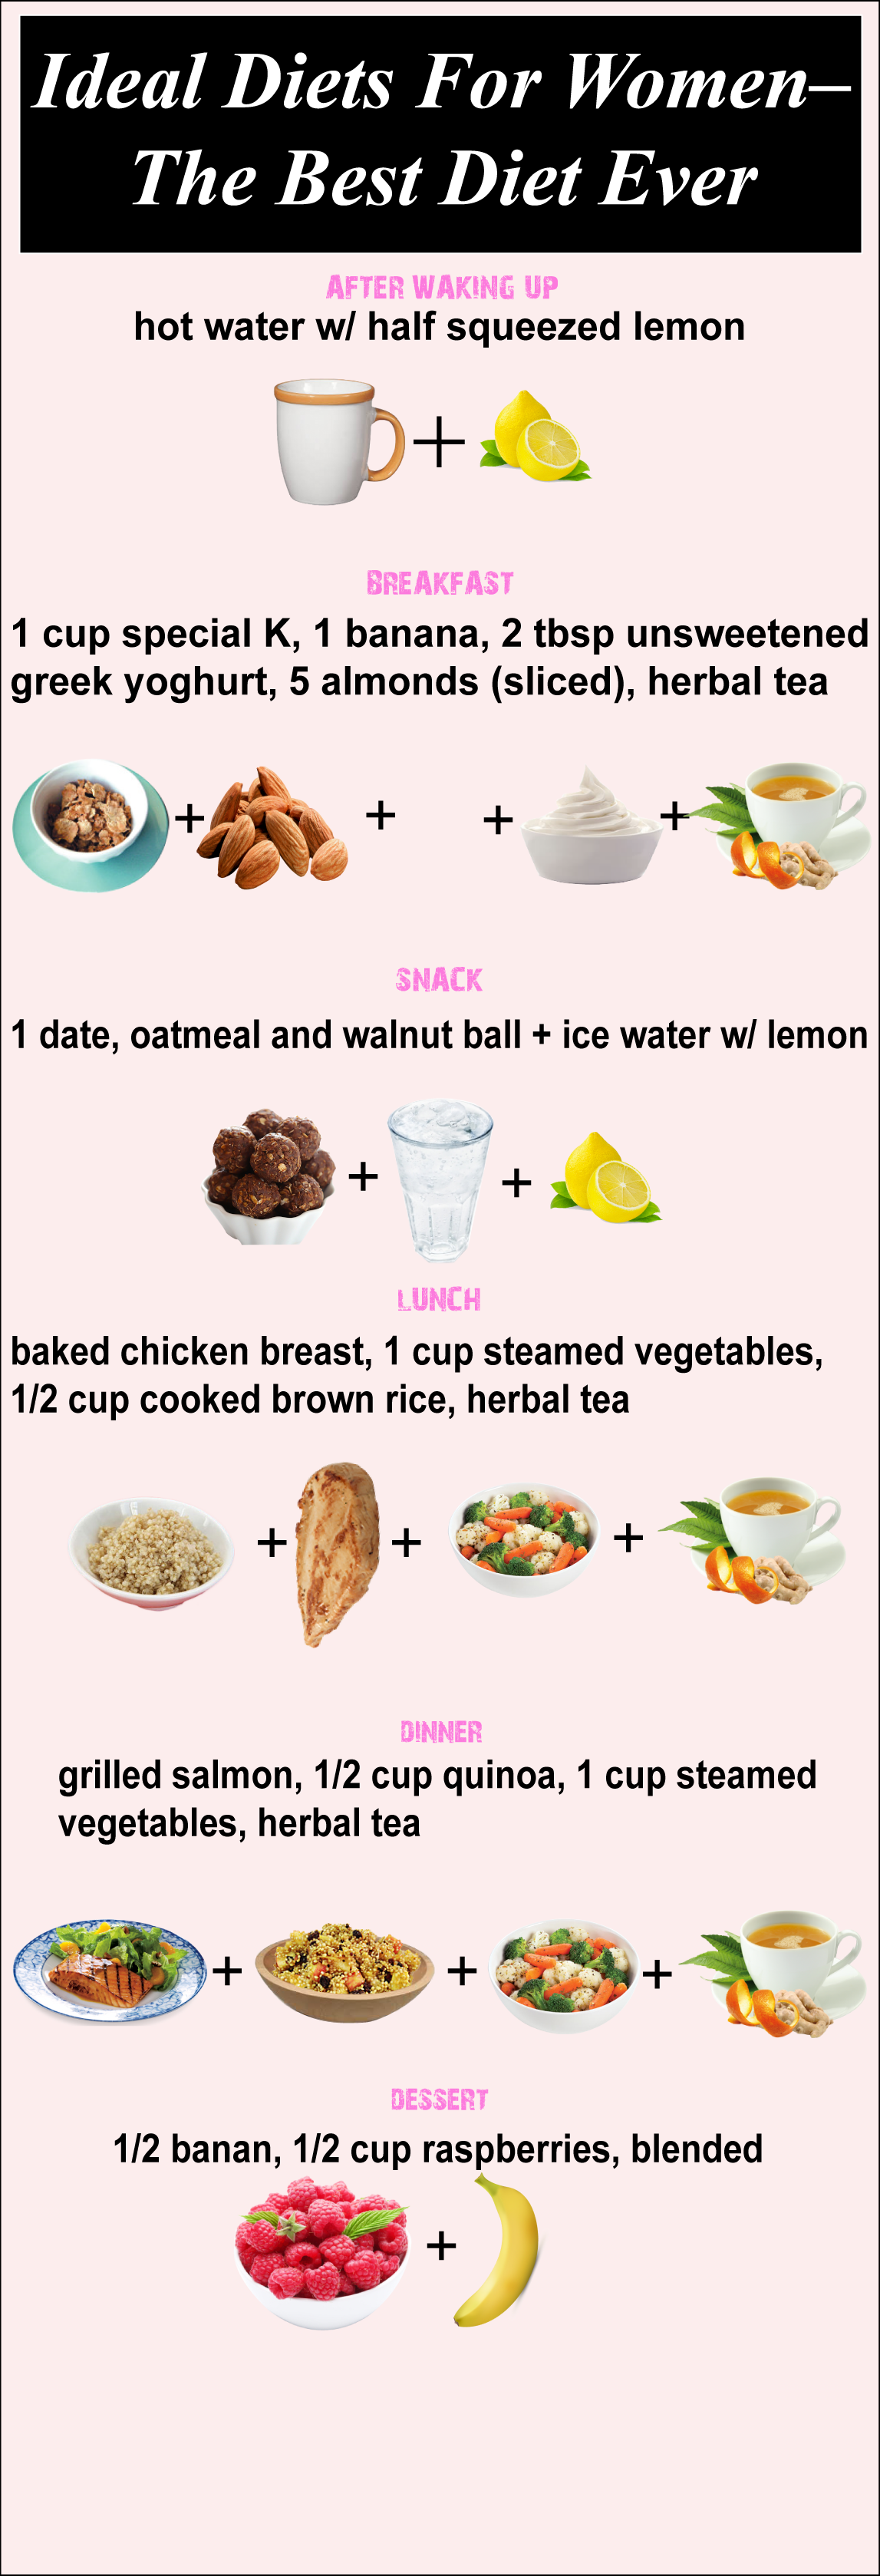 6 Ideal Diets For Women - The Best Diet Ever | An, Marketing and ...